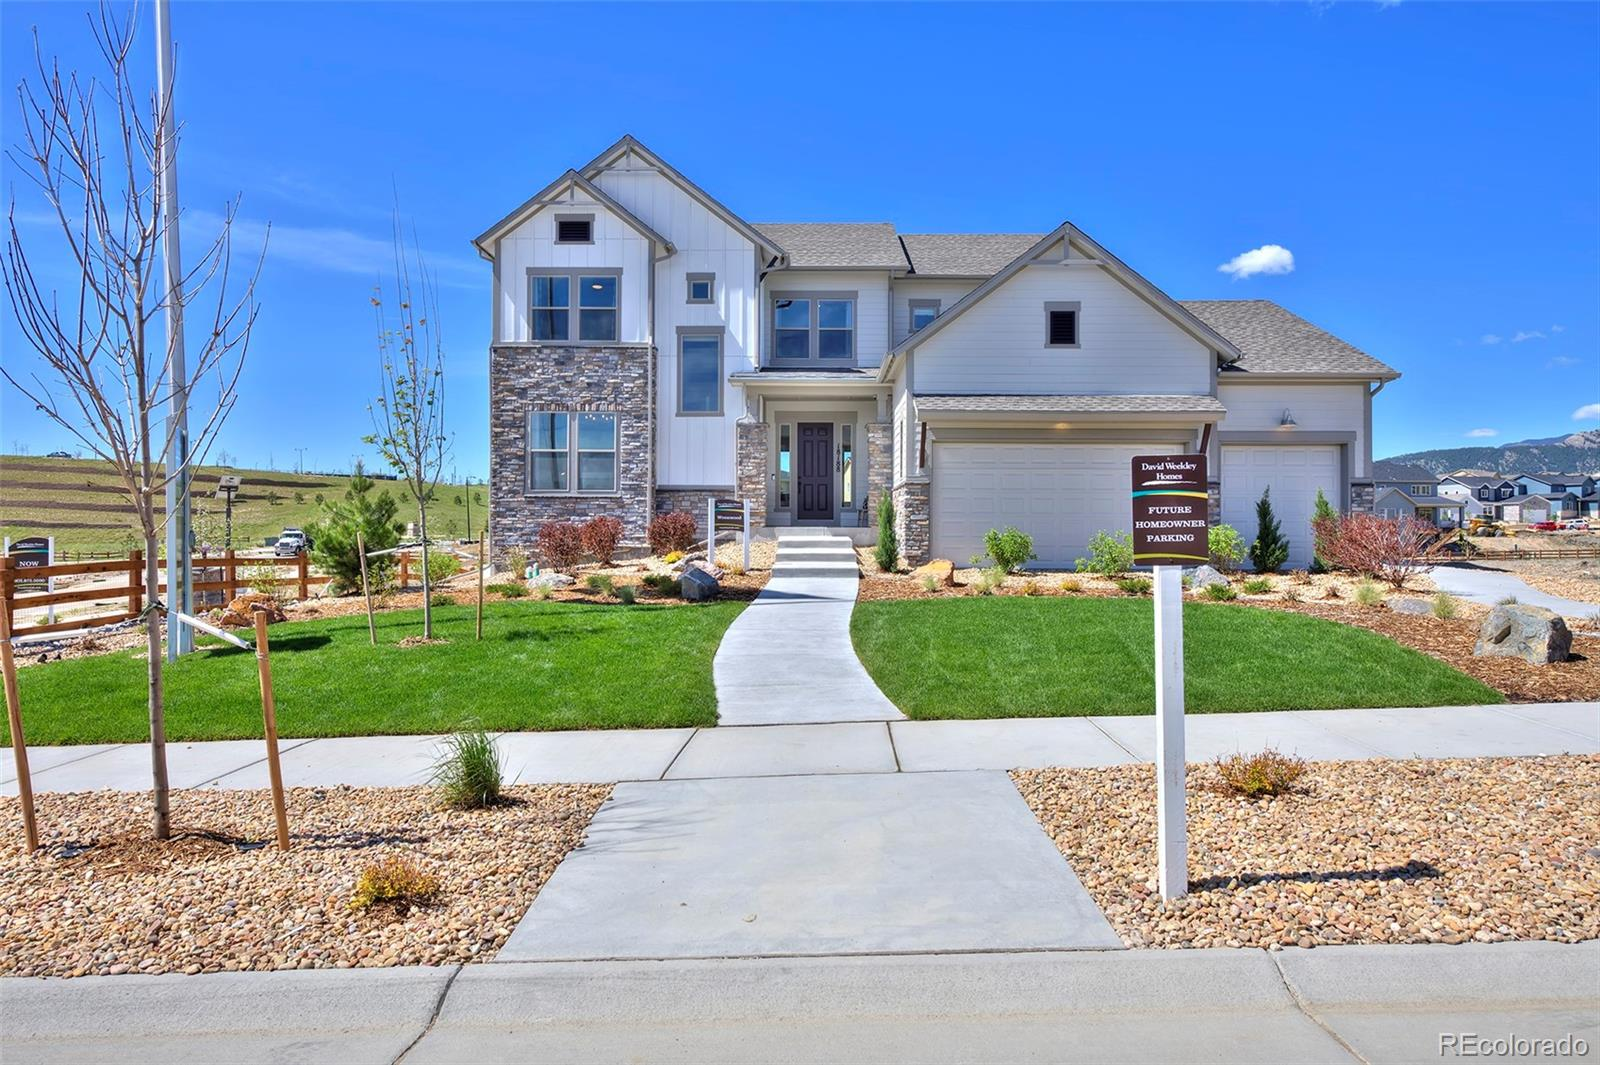 18672 W 95th Place, Arvada, CO 80007 - Arvada, CO real estate listing